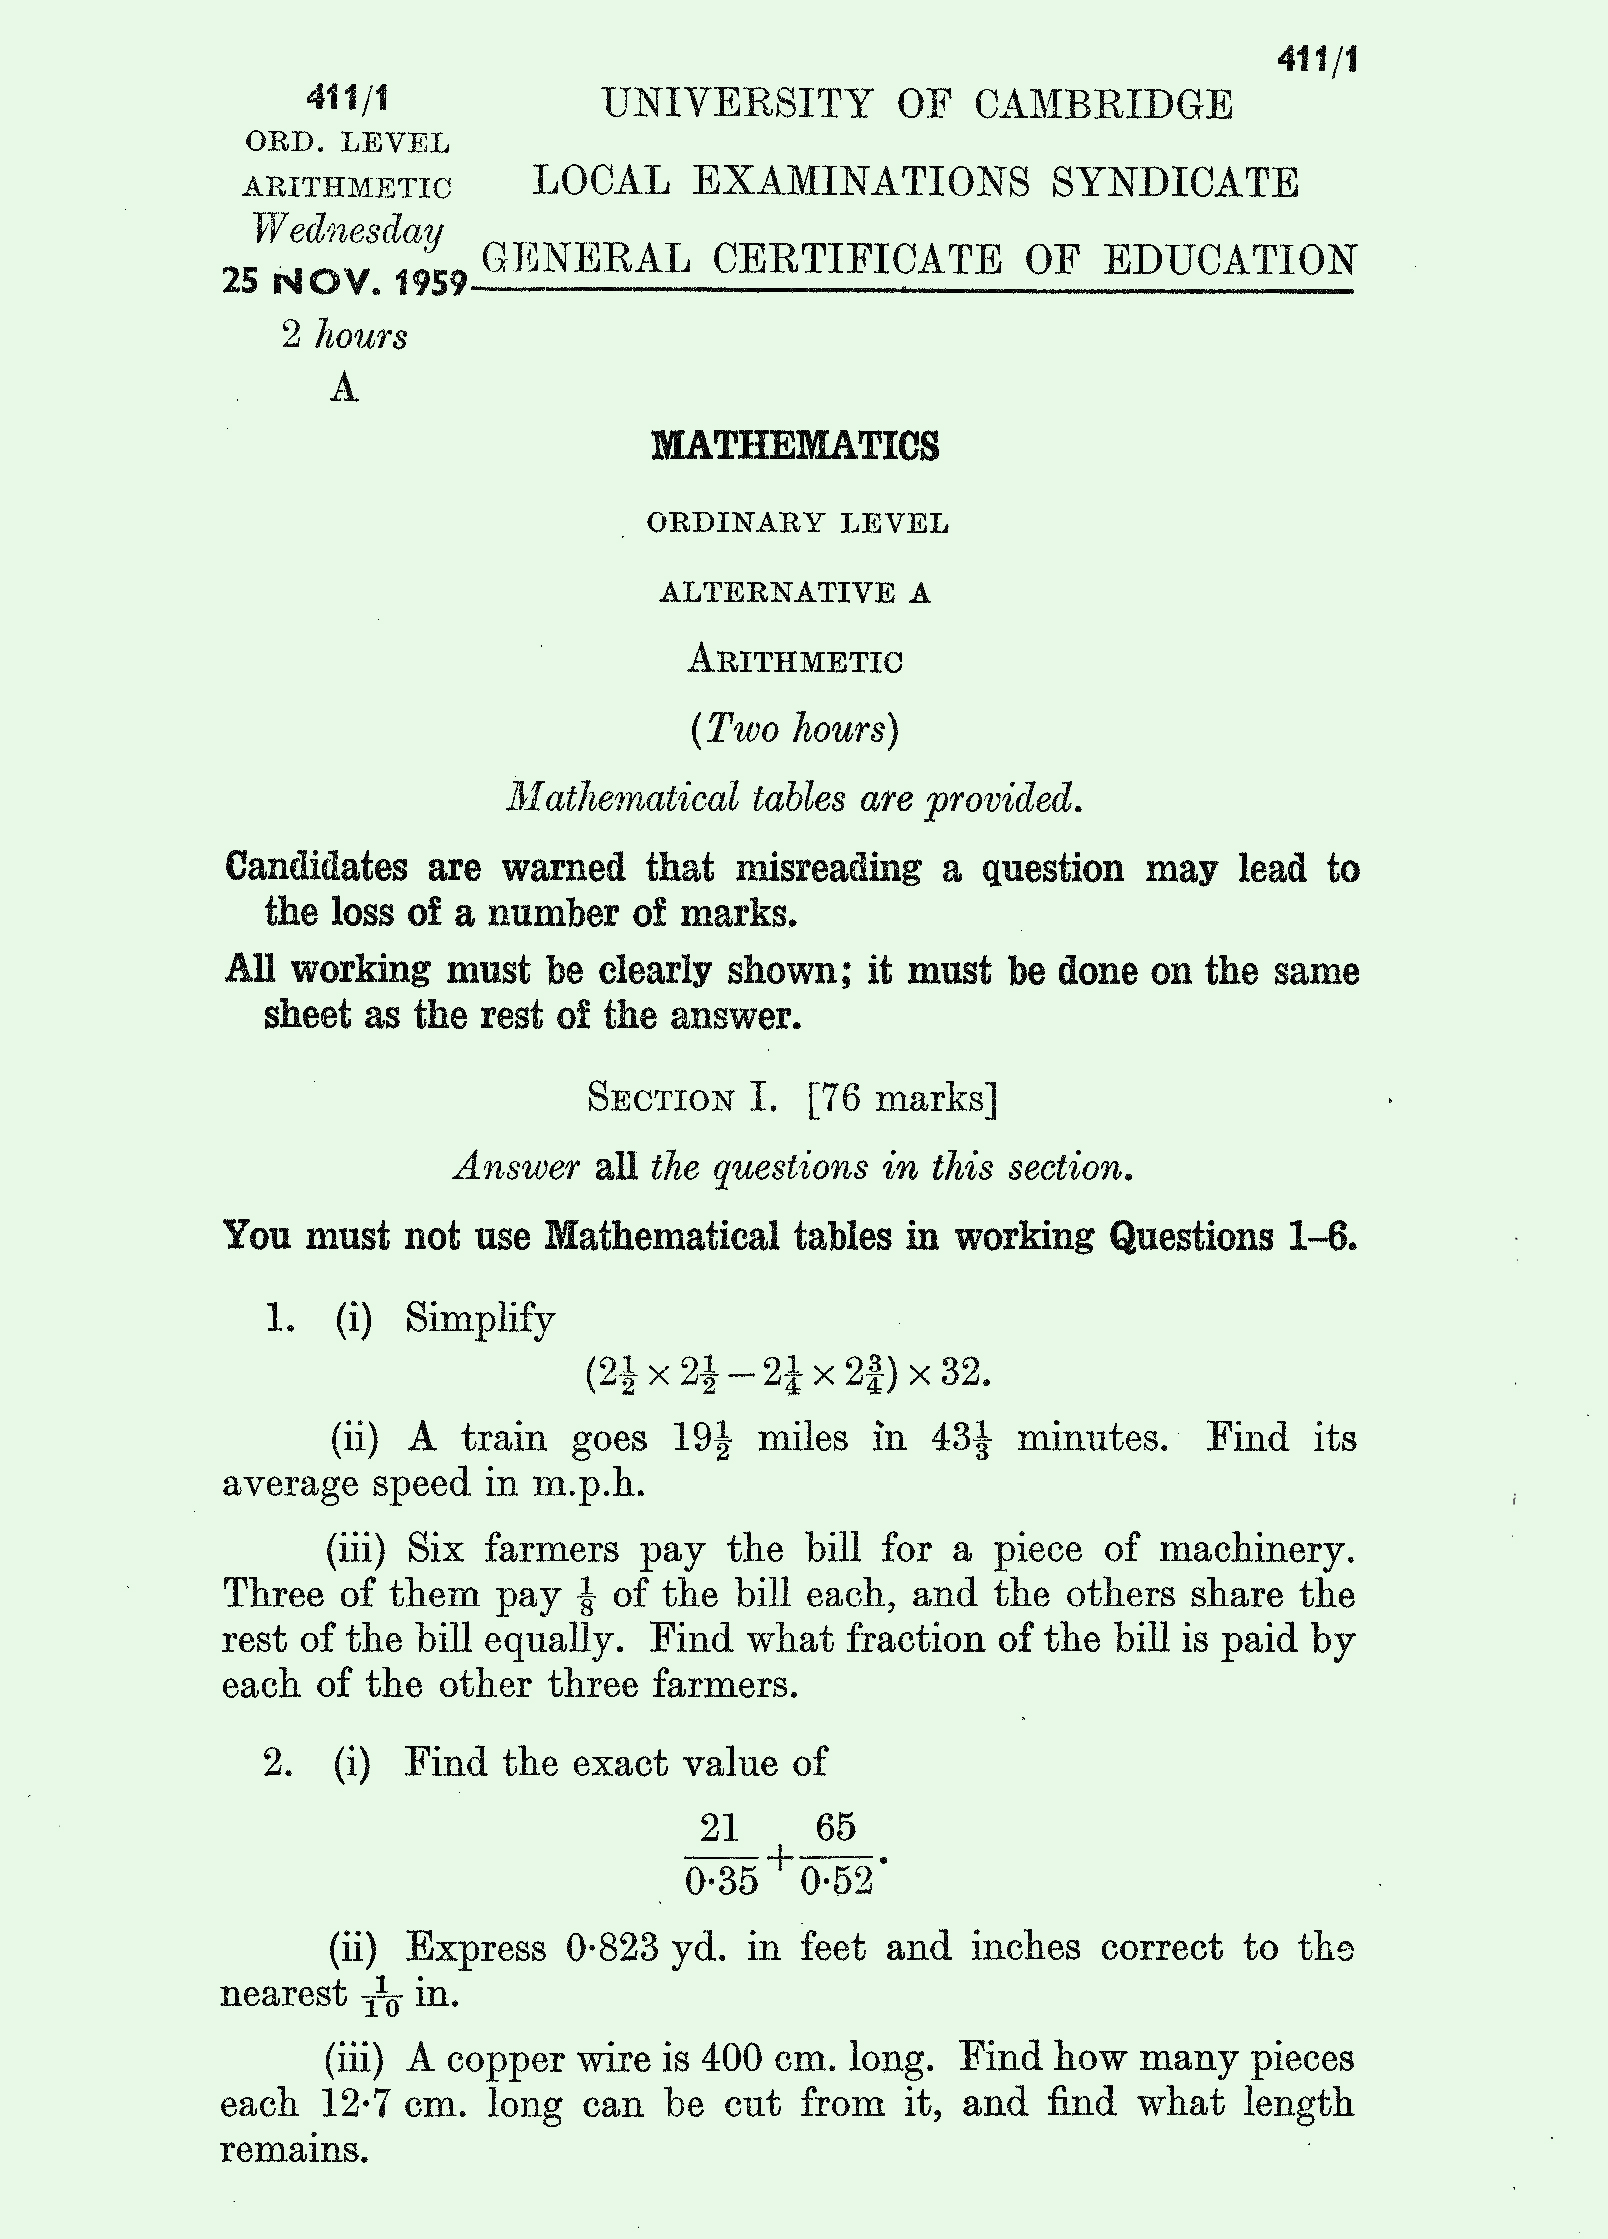 1959 Arithmetic exam page 1